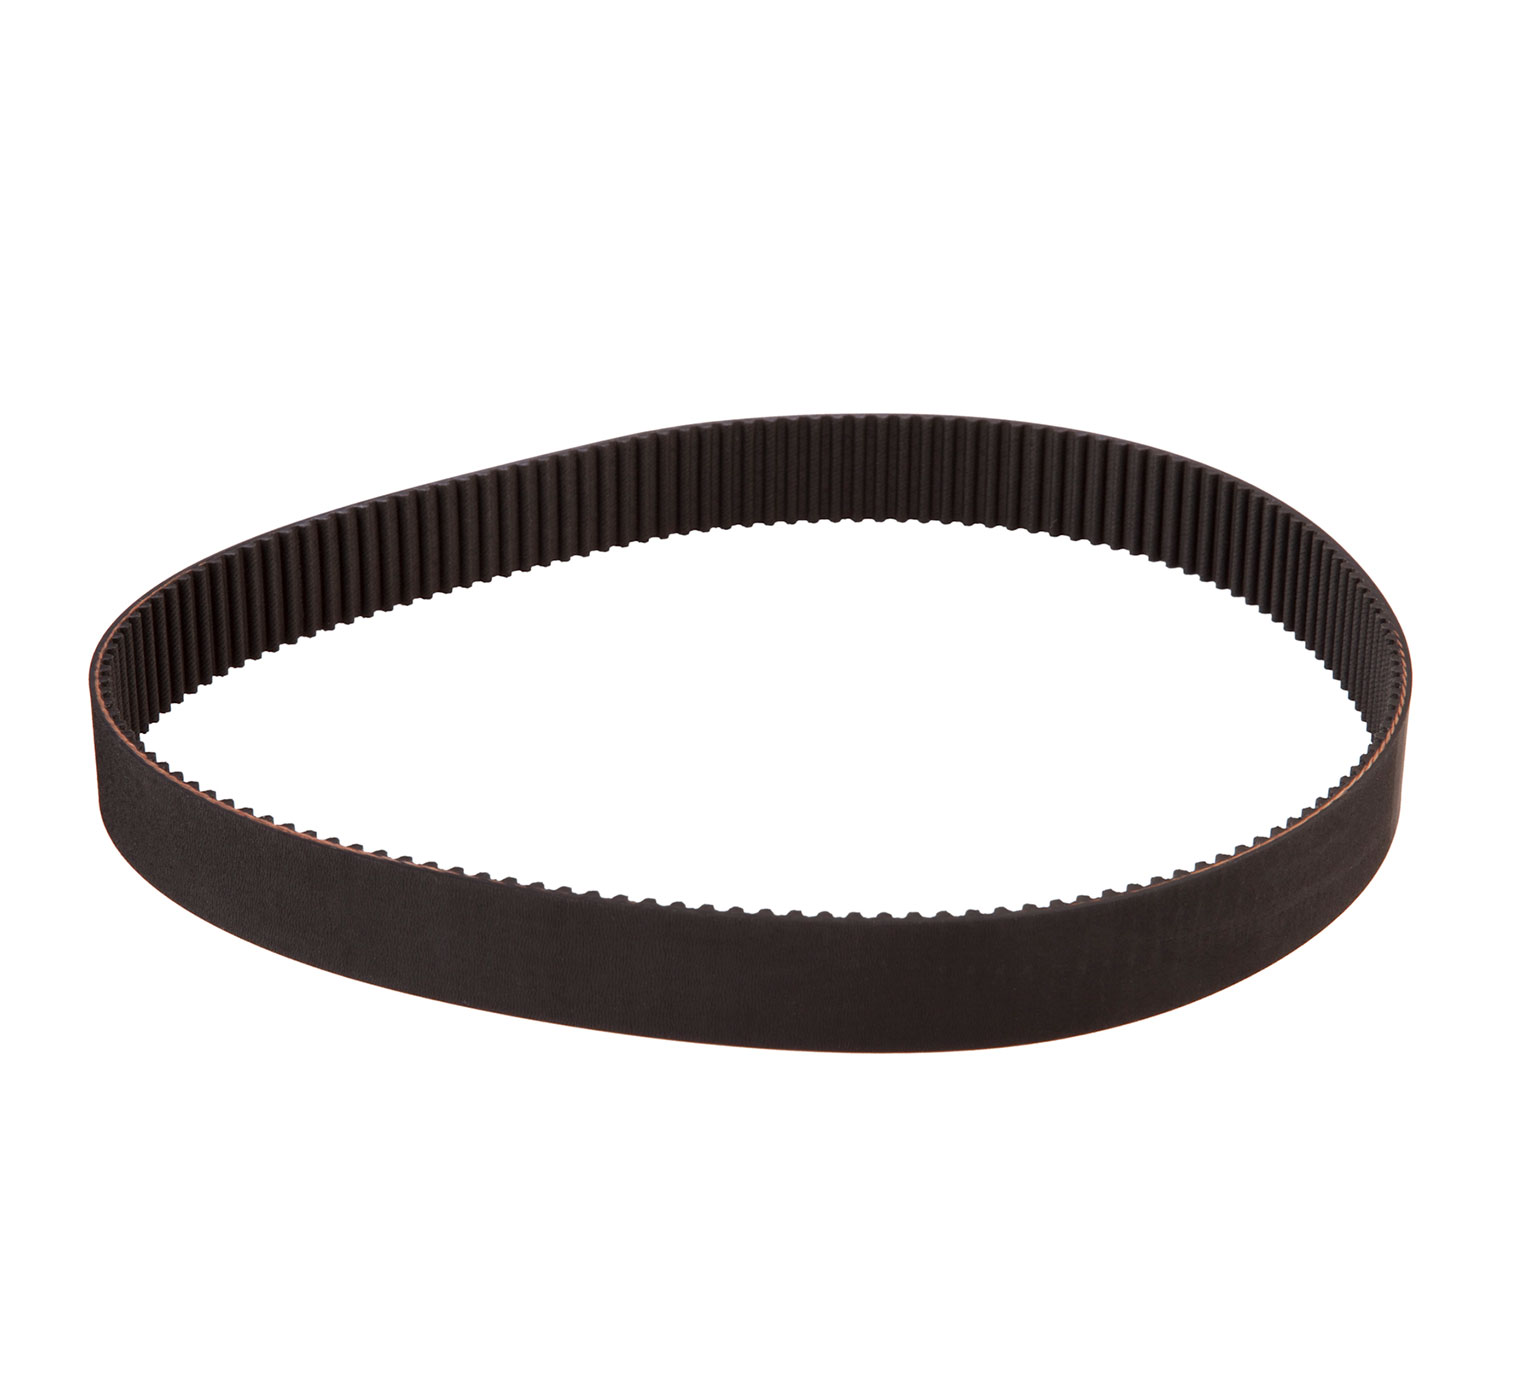 386053 Cogged Belt - 29.5 x .98 in alt 1